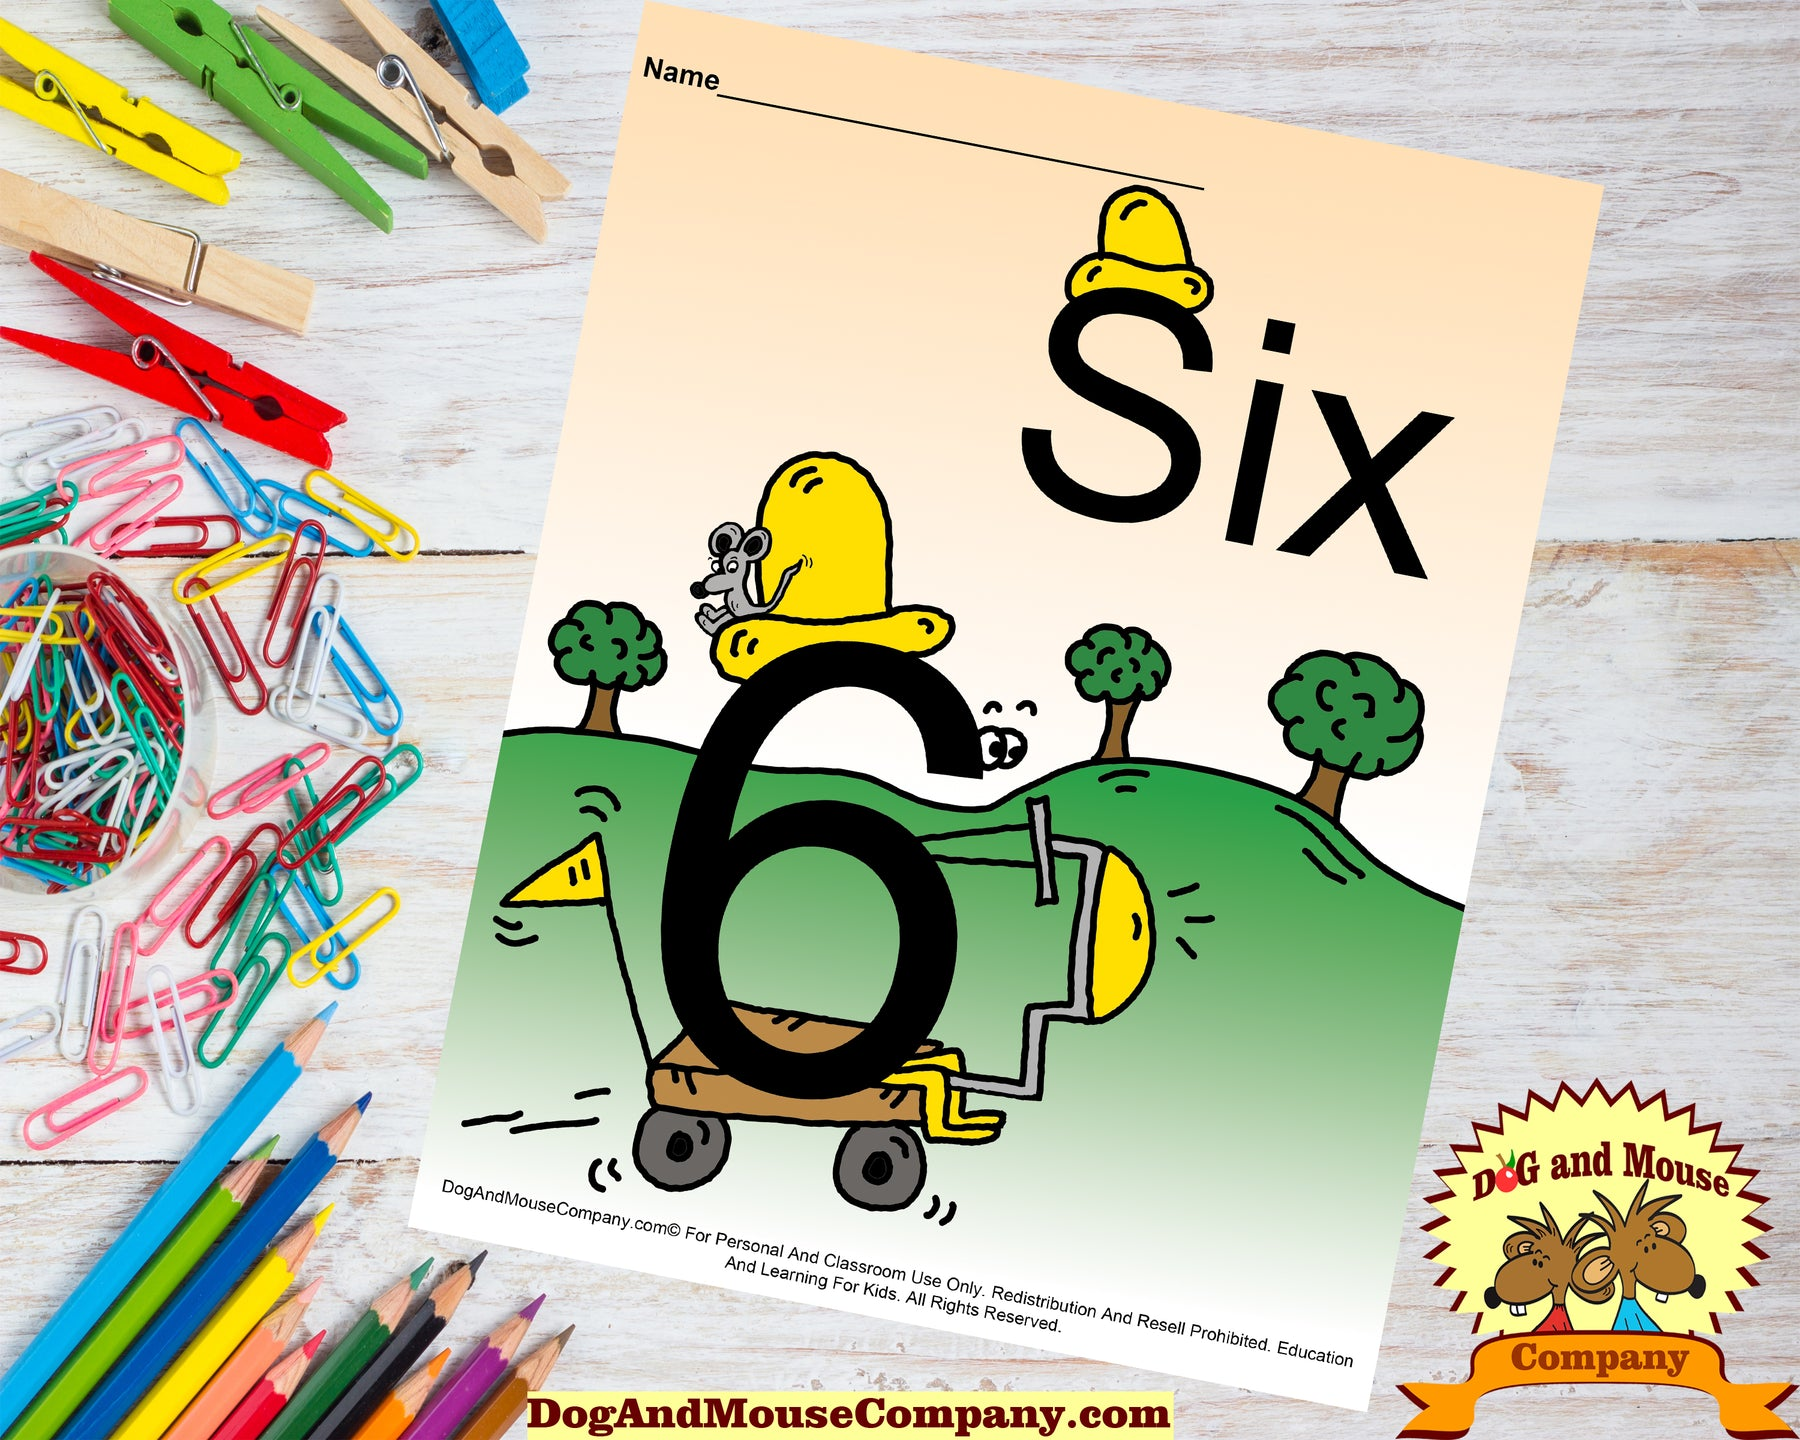 Learn The Number Six Colored Template Preschool Worksheets Dog And Mouse Company Riding Scooter With Mouse Sitting On Hat